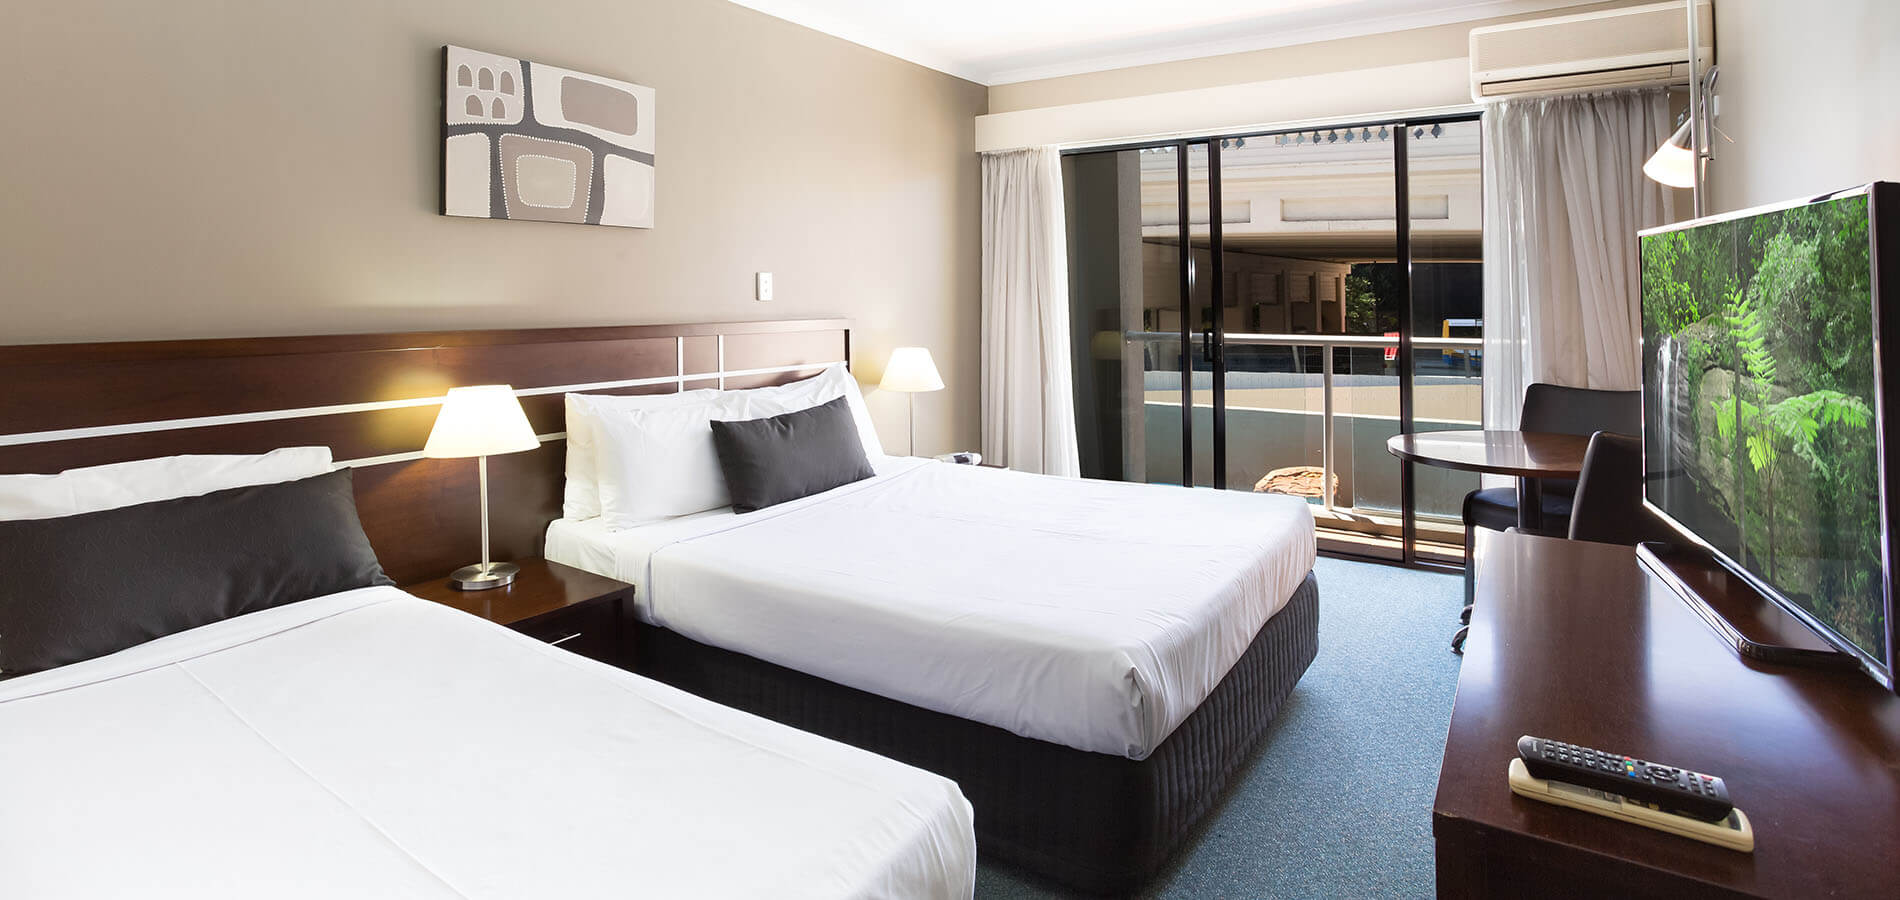 Standard Size Of A  Star Hotel Room